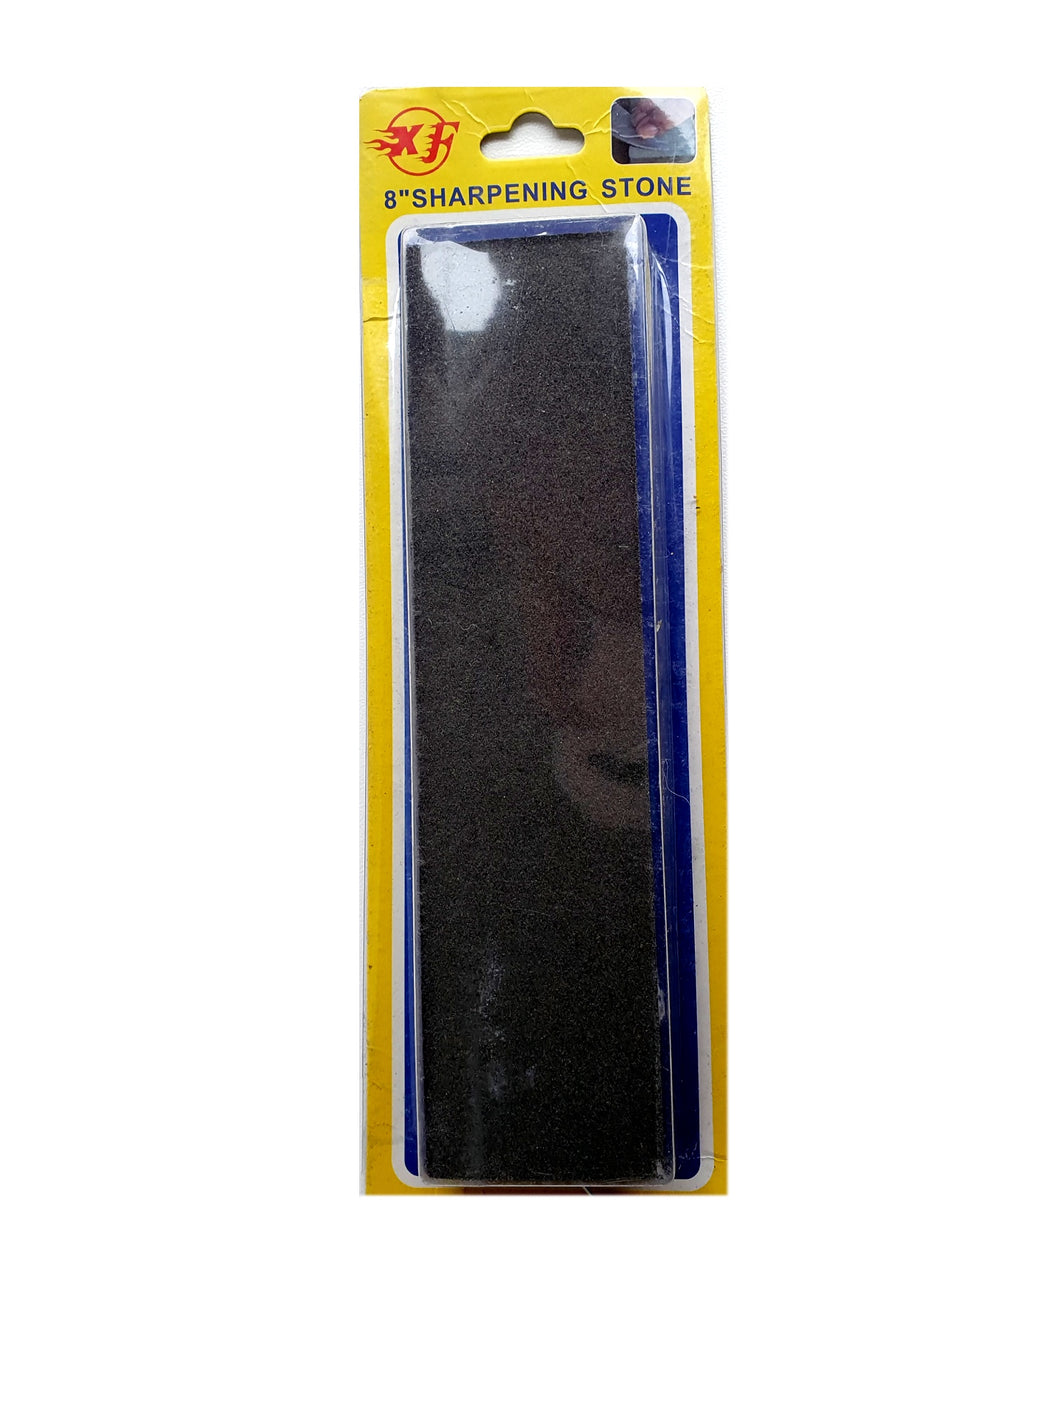 Knife Sharpening Stone 8 Inch - Toko Indo NZ